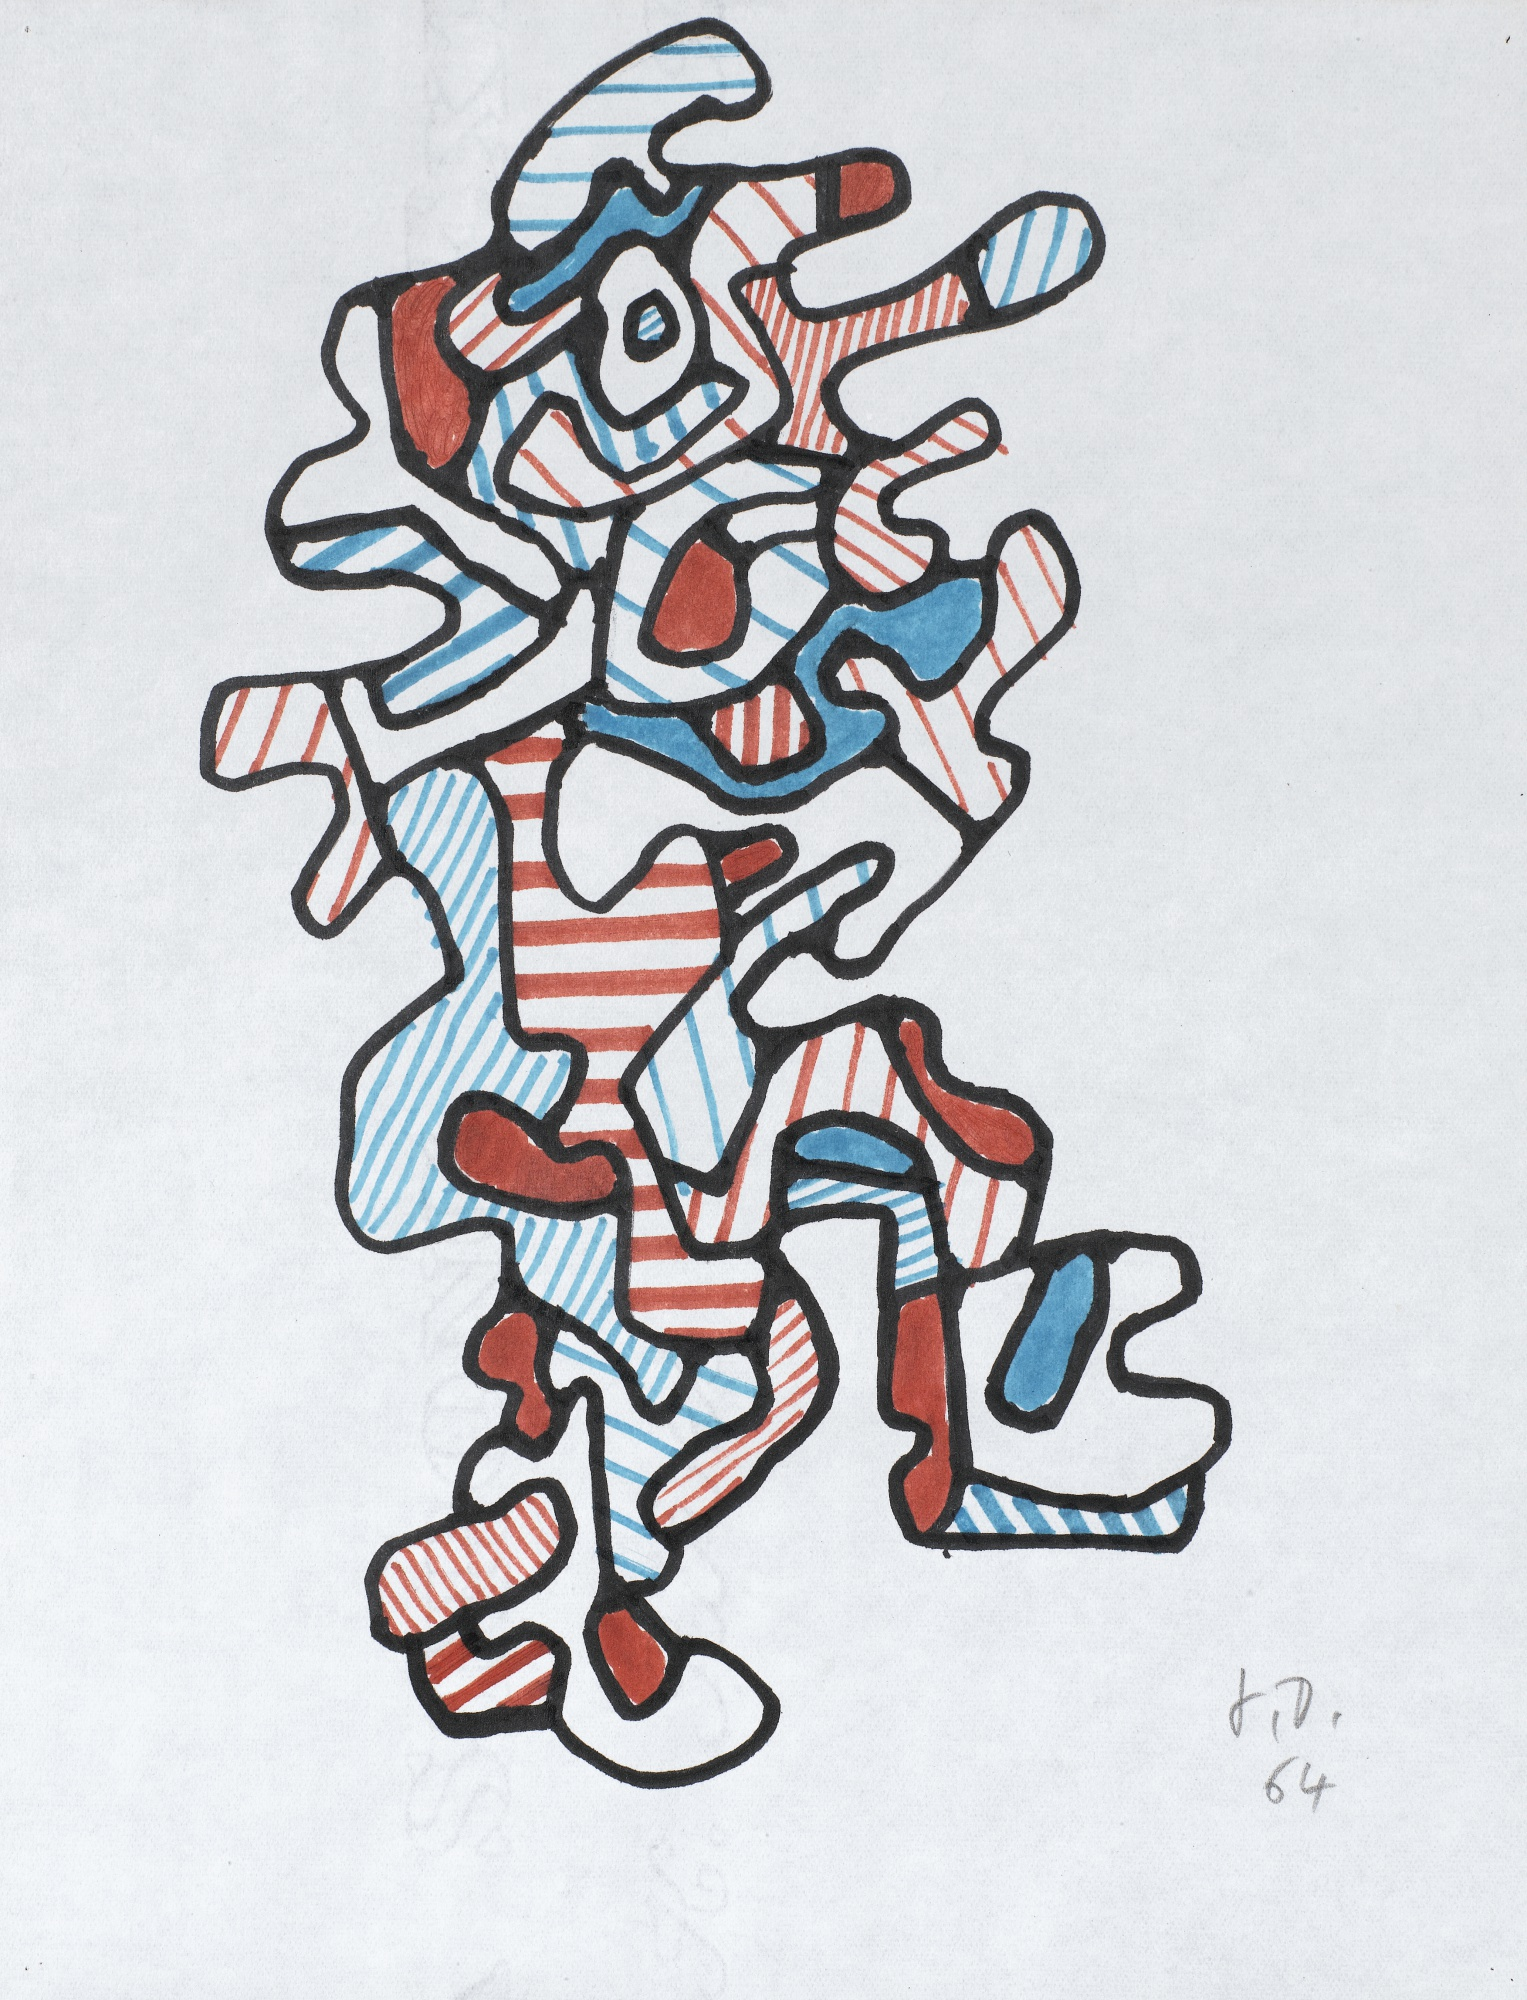 Jean Dubuffet-Personnage XIV-1964